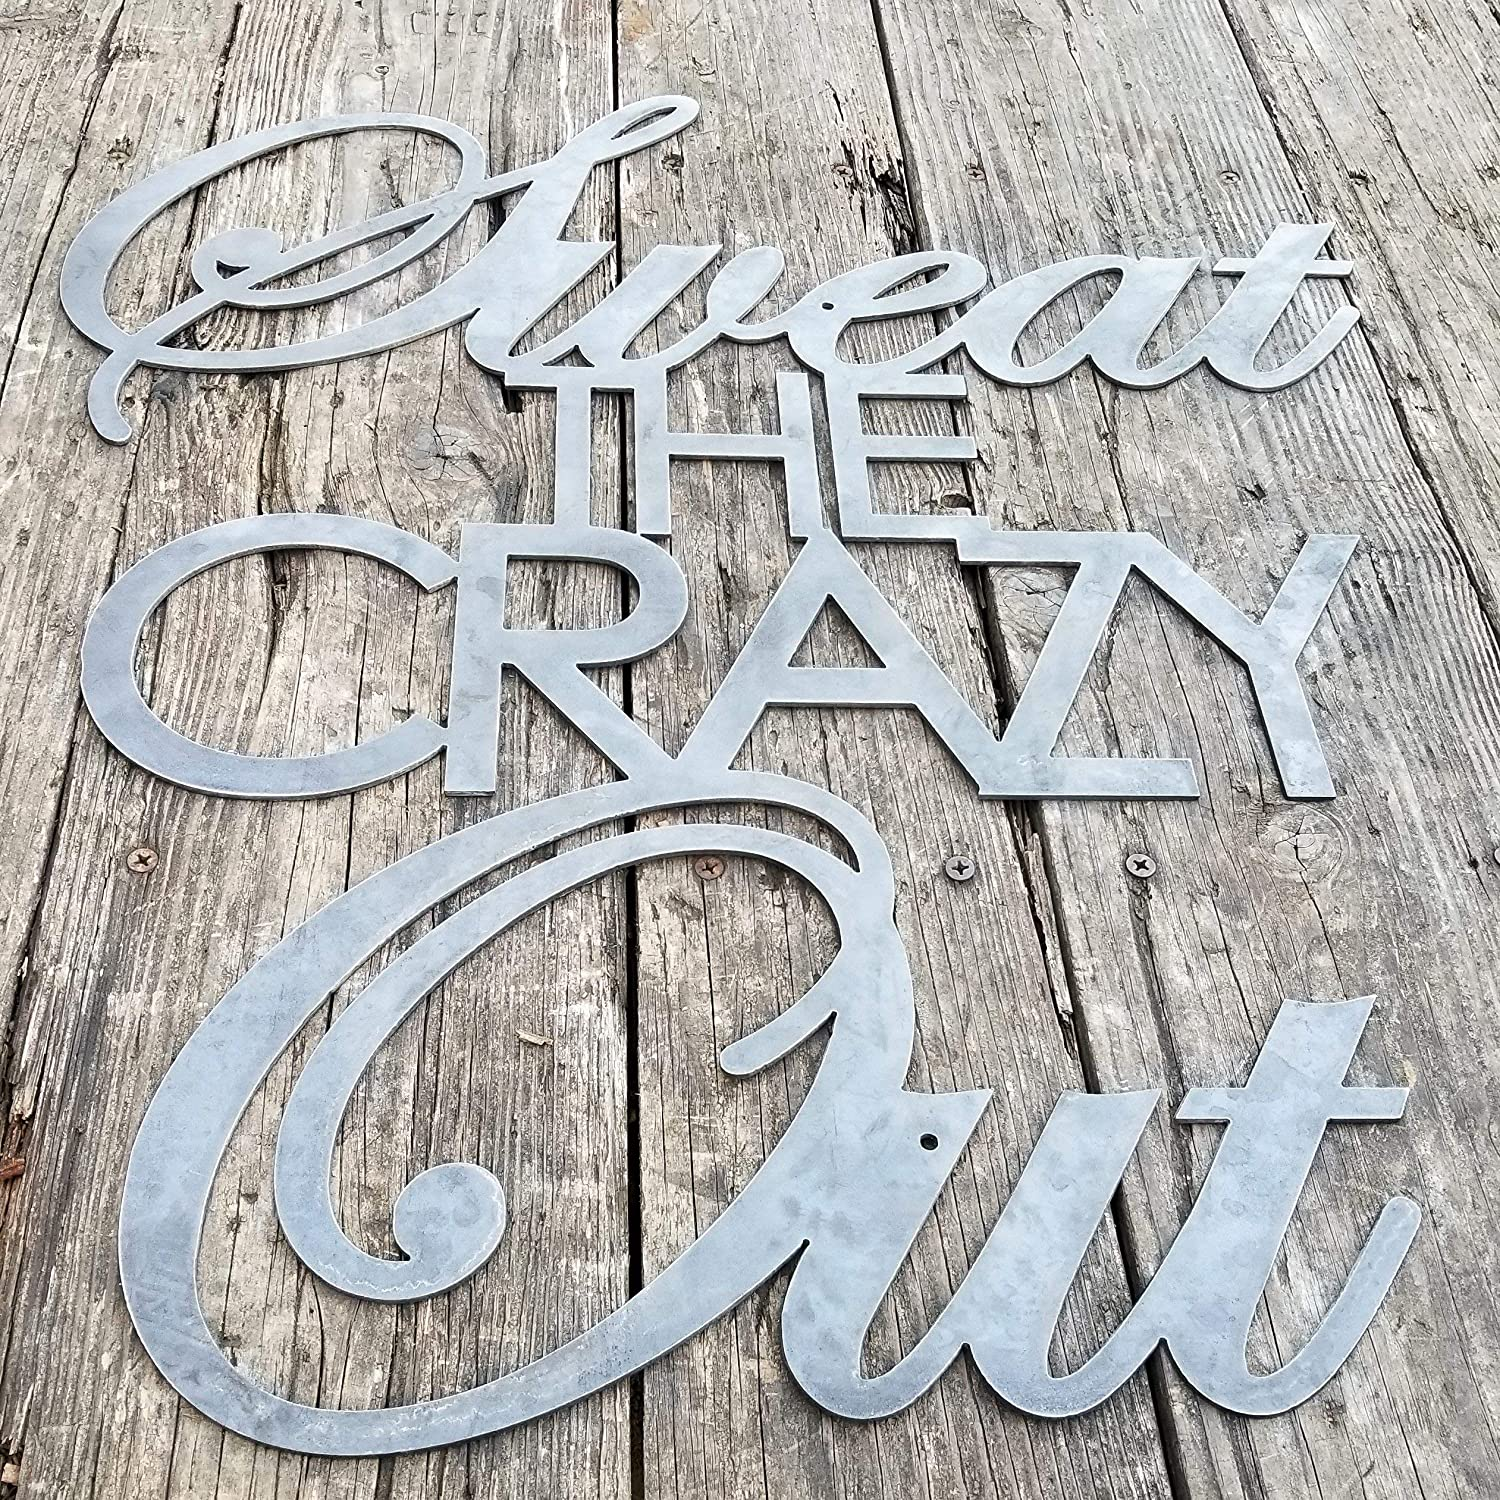 """Maker Table Metal Sweat The Crazy Out - Home Gym Sign - Yoga, Work Out, Exercise, Peloton, Raw Steel, 24"""" x 20.5"""""""